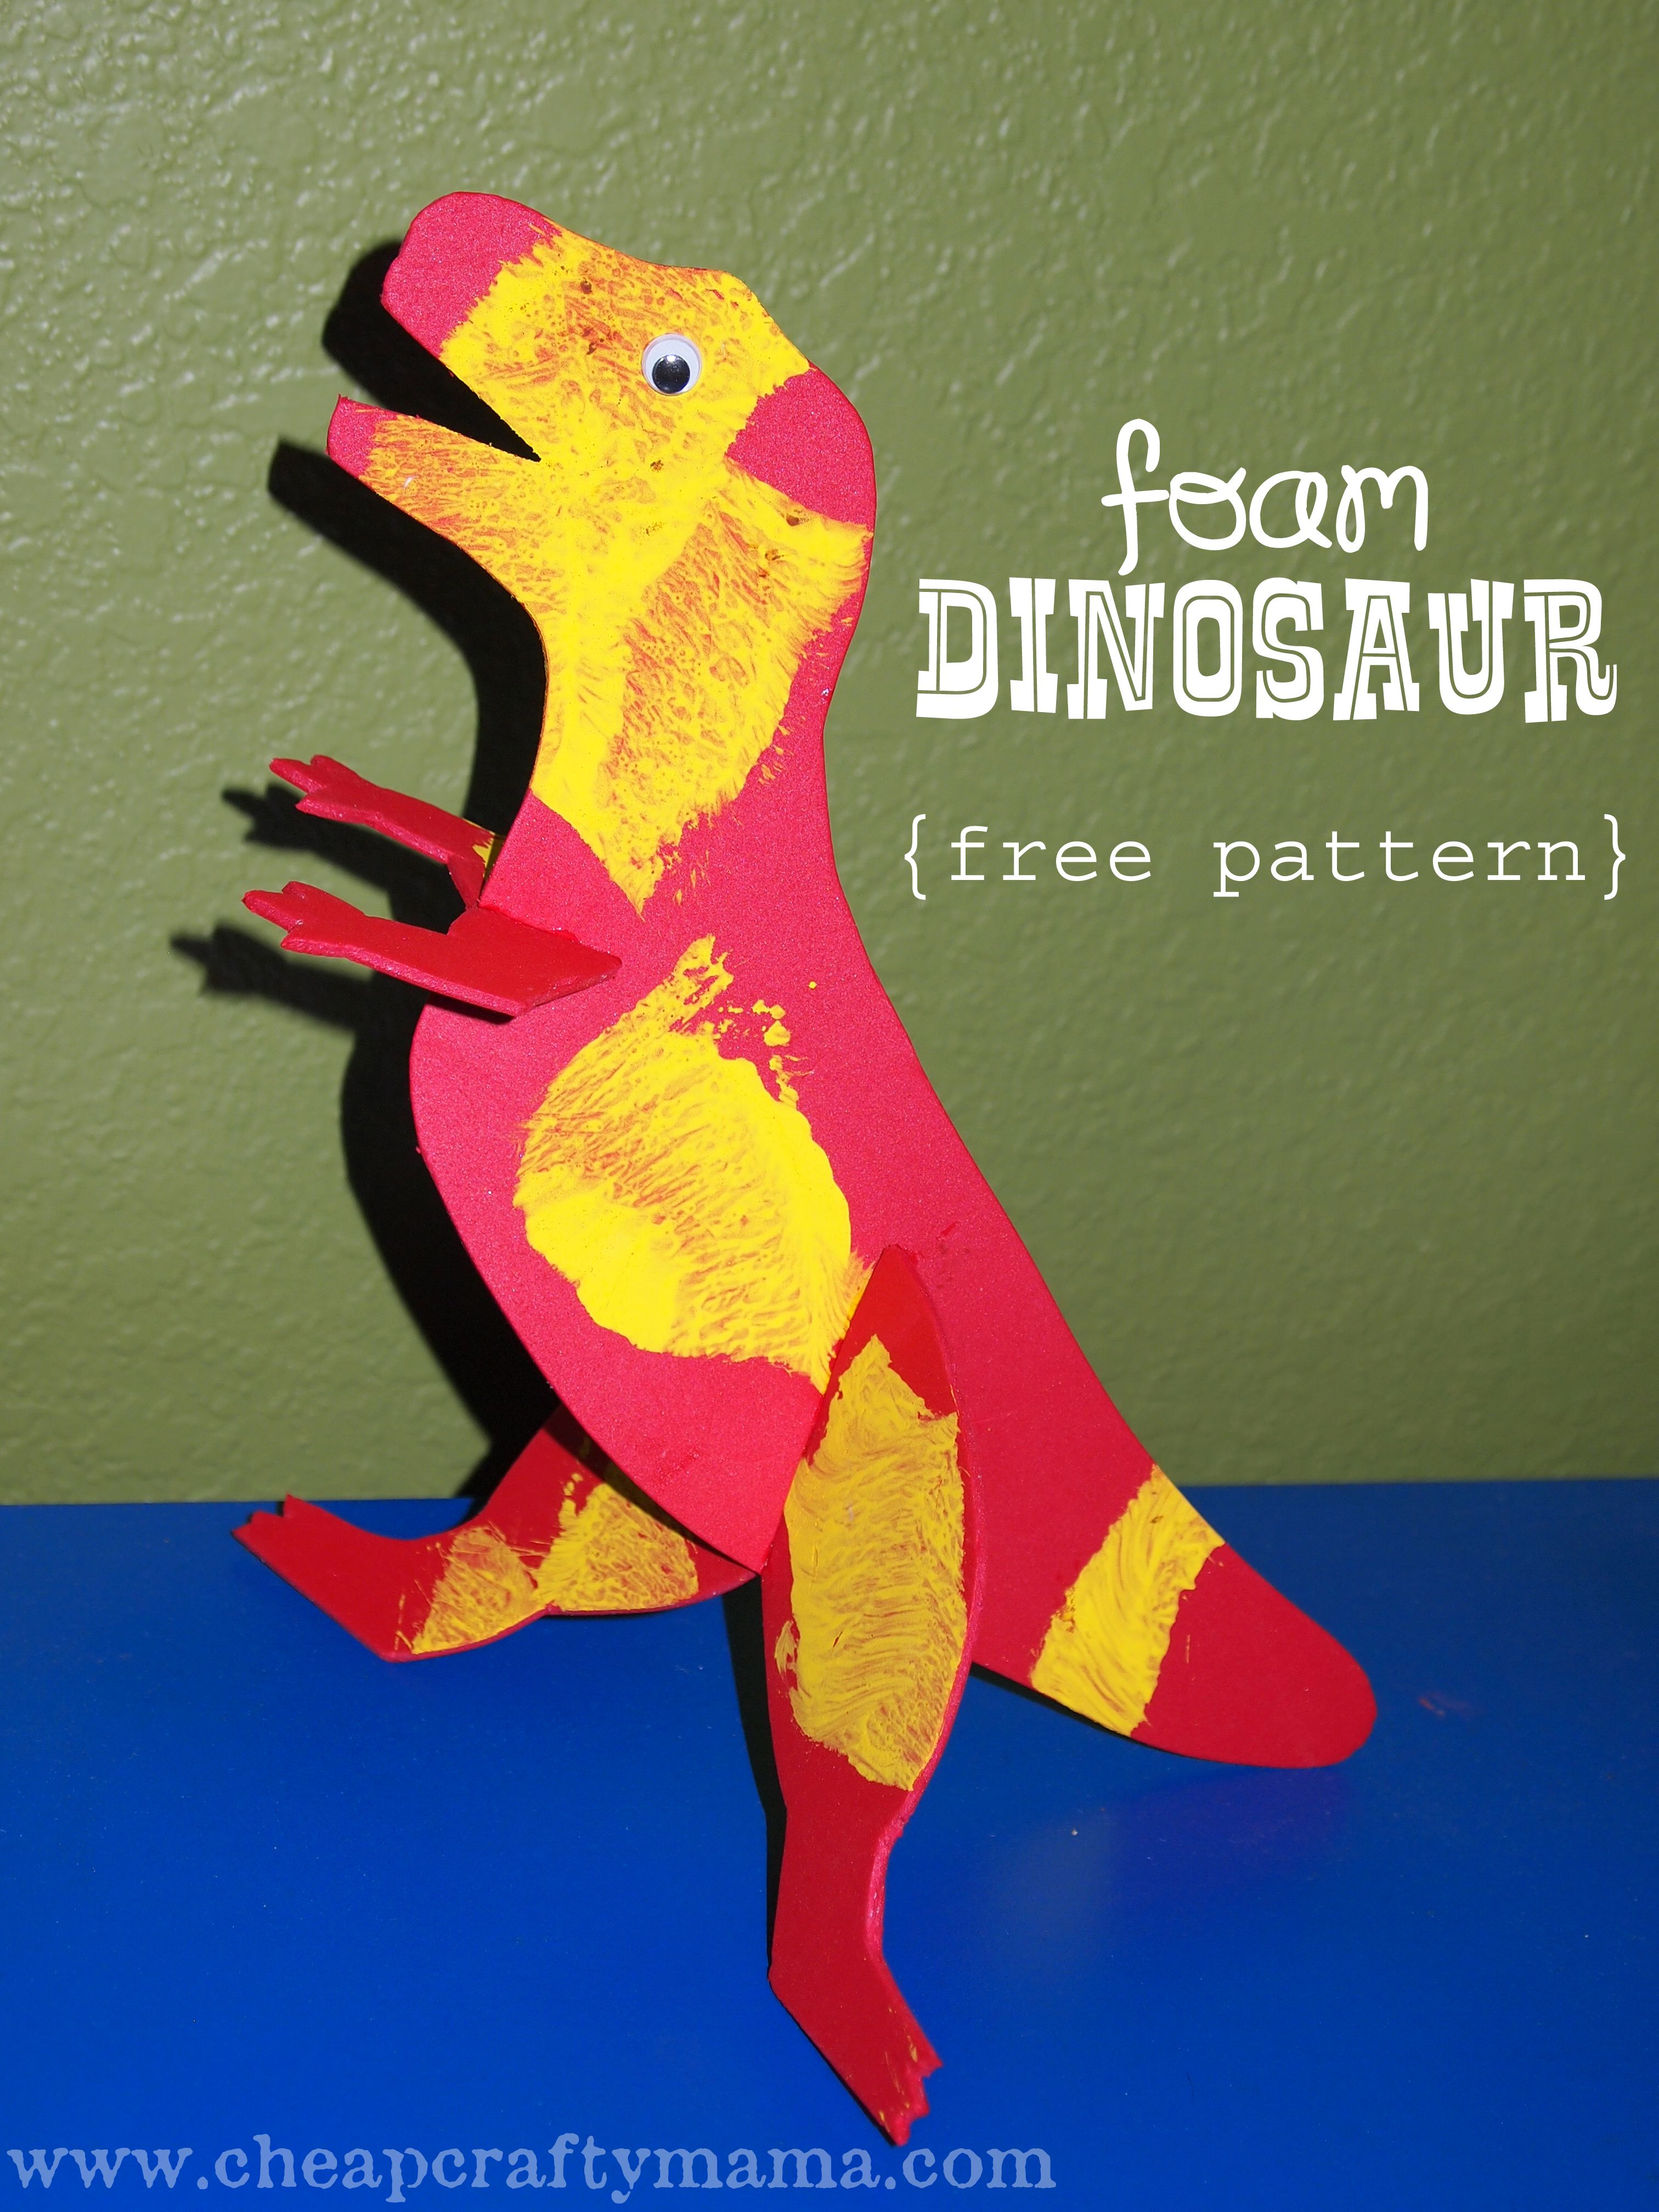 D Is For Dinosaur Fun Project With Free Printable Pattern